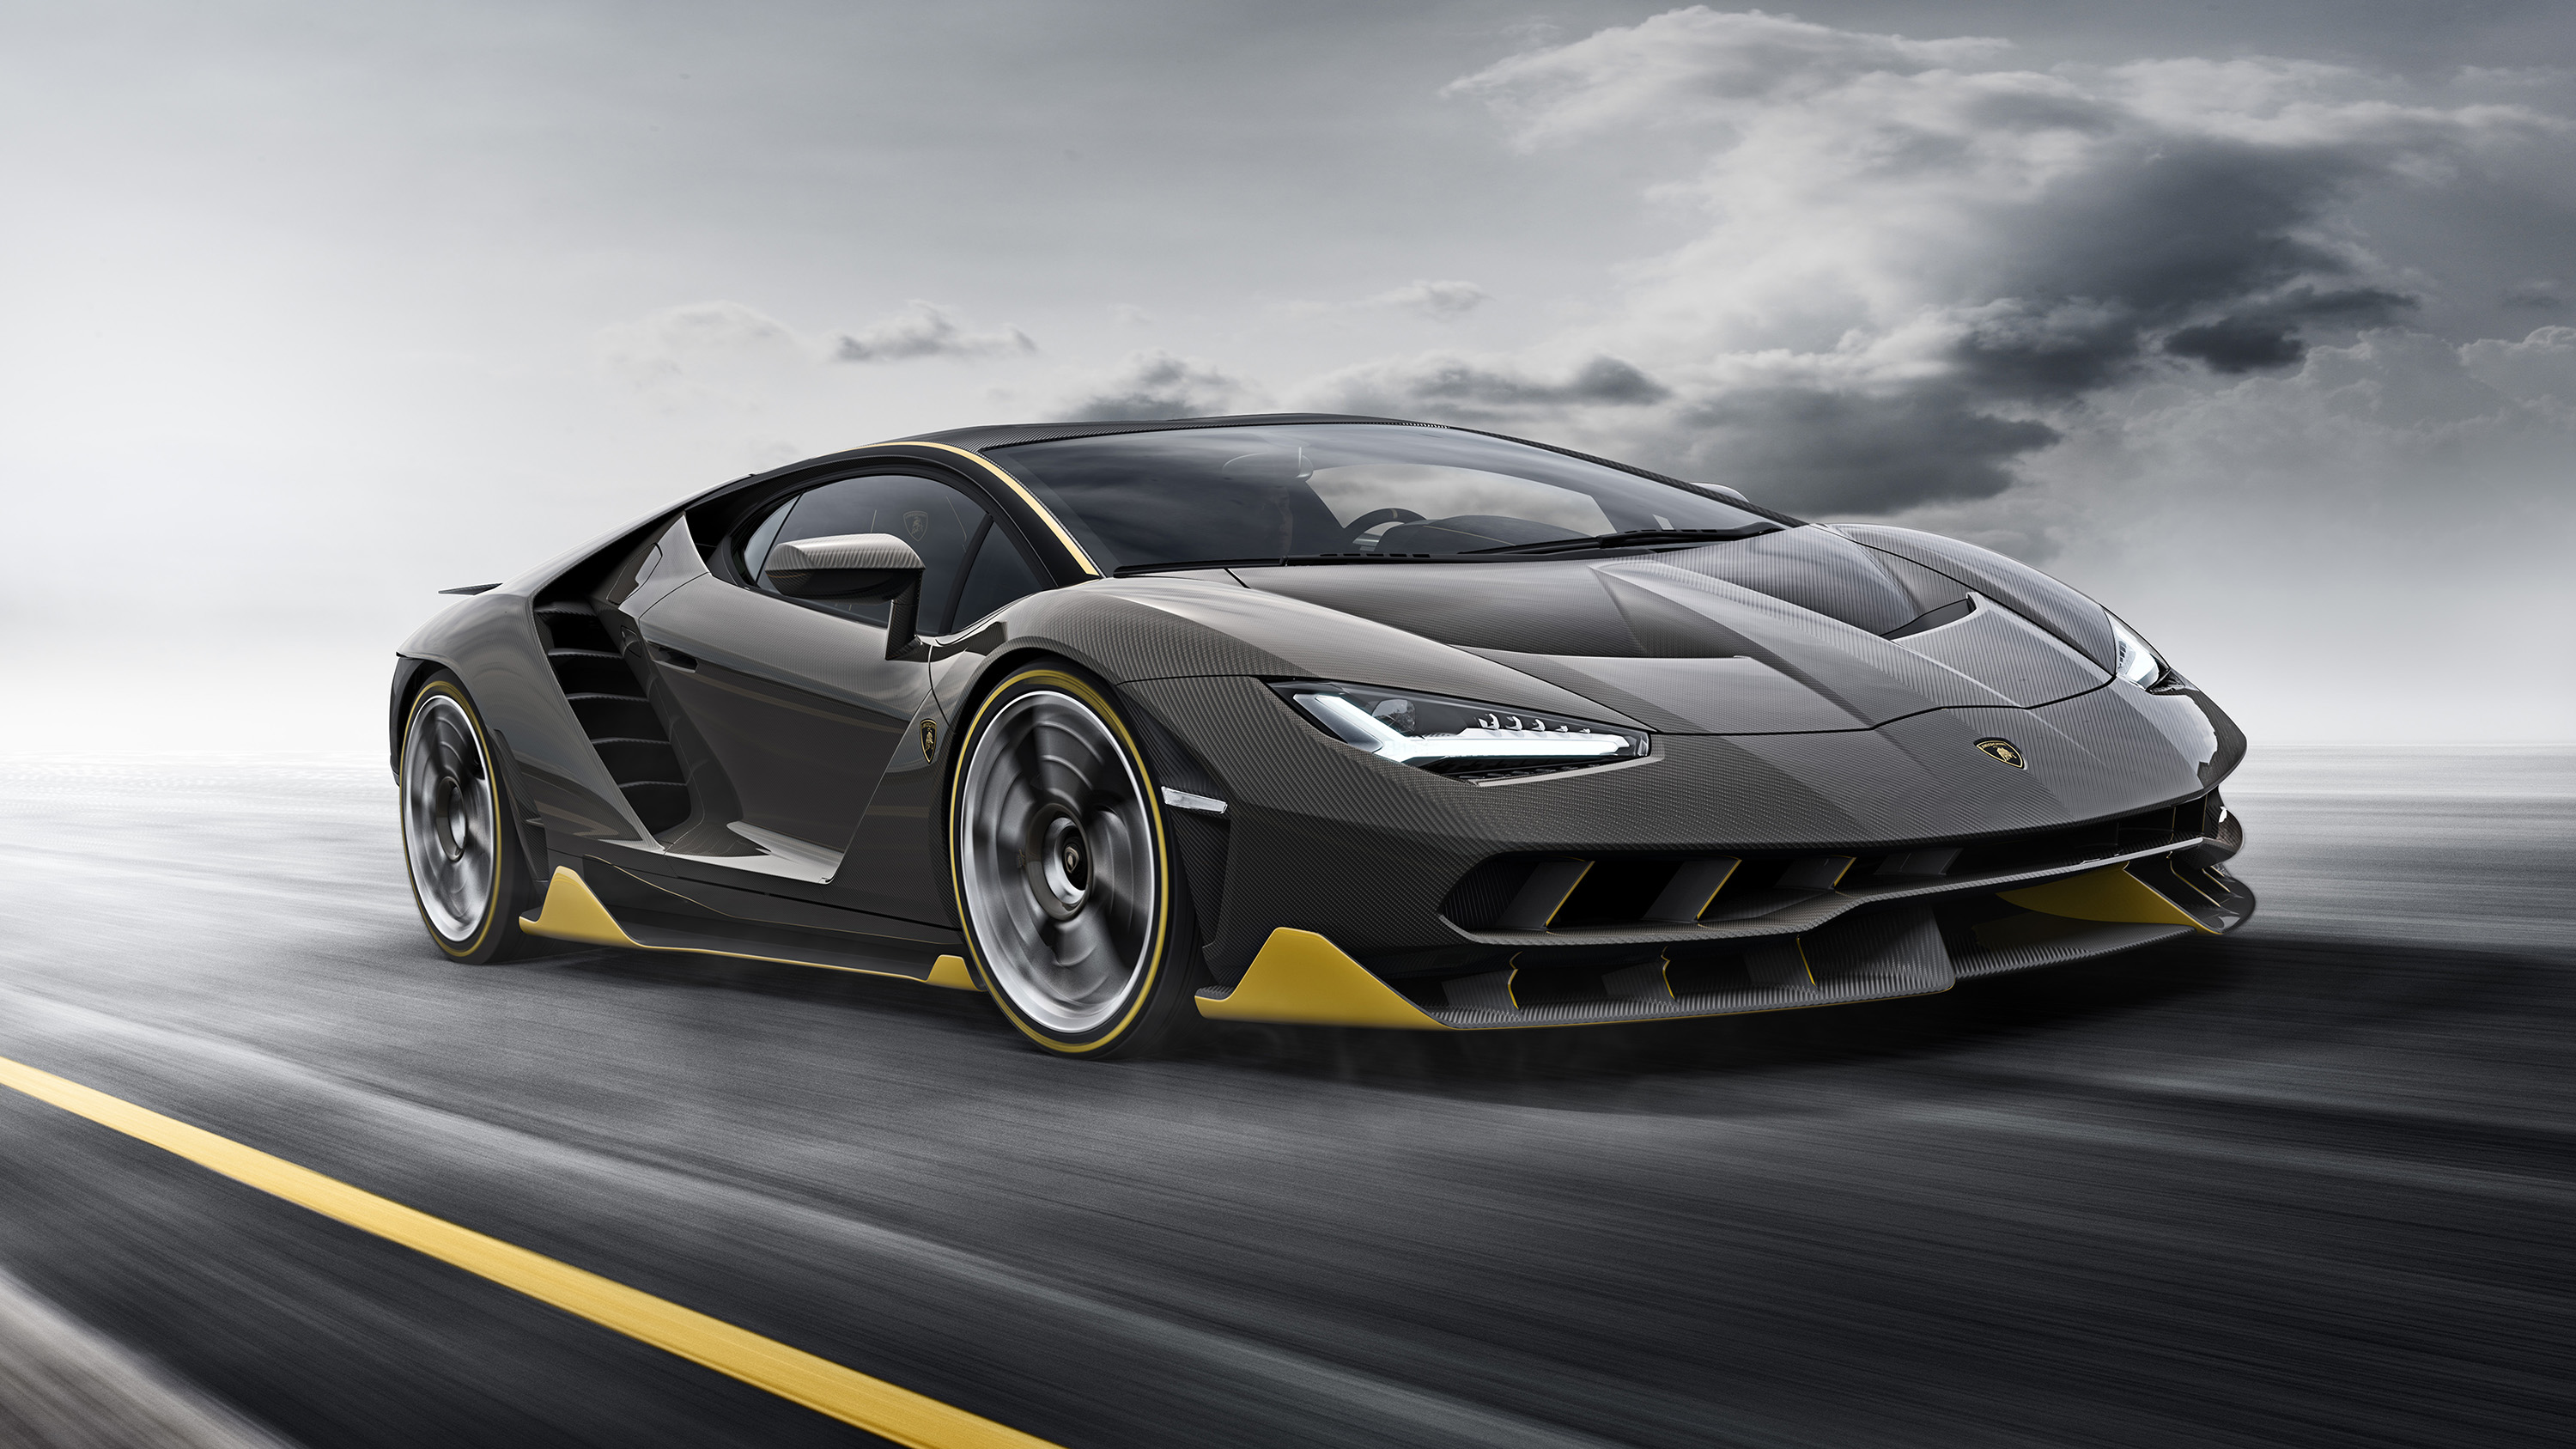 HD Wallpaper | Background Image ID:683928. 3000x1687 Vehicles Lamborghini Centenario